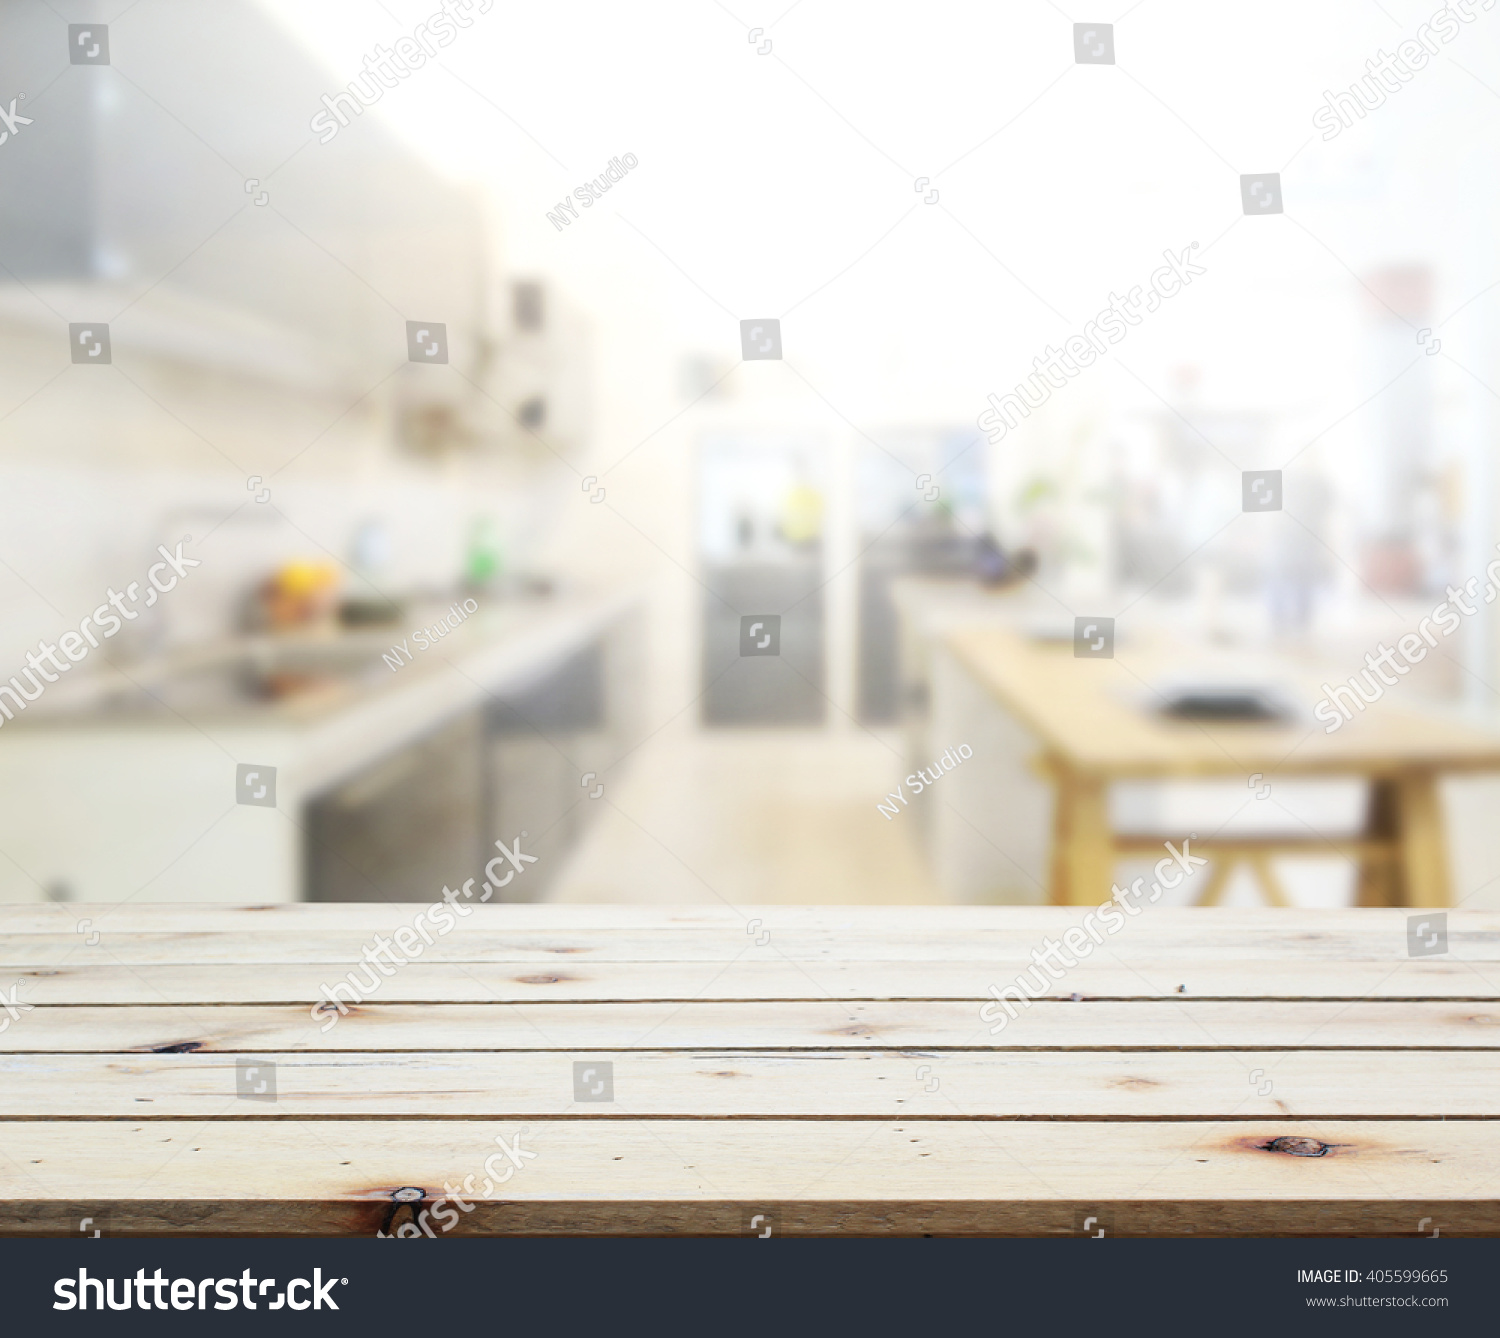 Kitchen Background Image: Table Top And Blur Kitchen Room Of The Background Stock